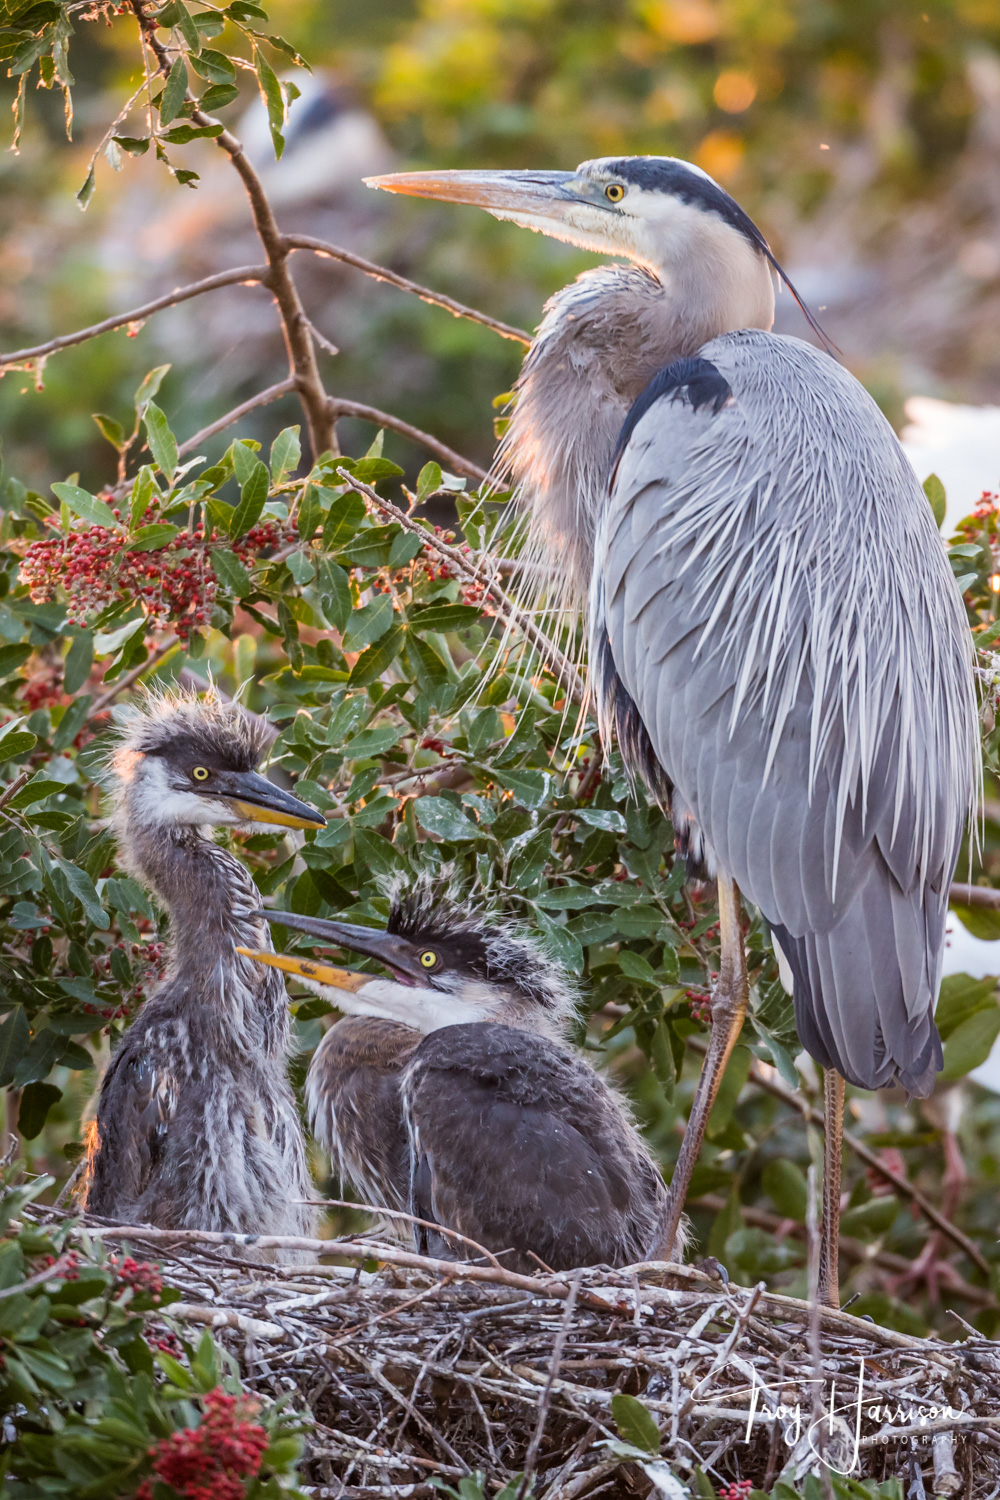 1 - Great Blue Heron Chicks, Everglades, Jan. 2019, img 2407.jpg